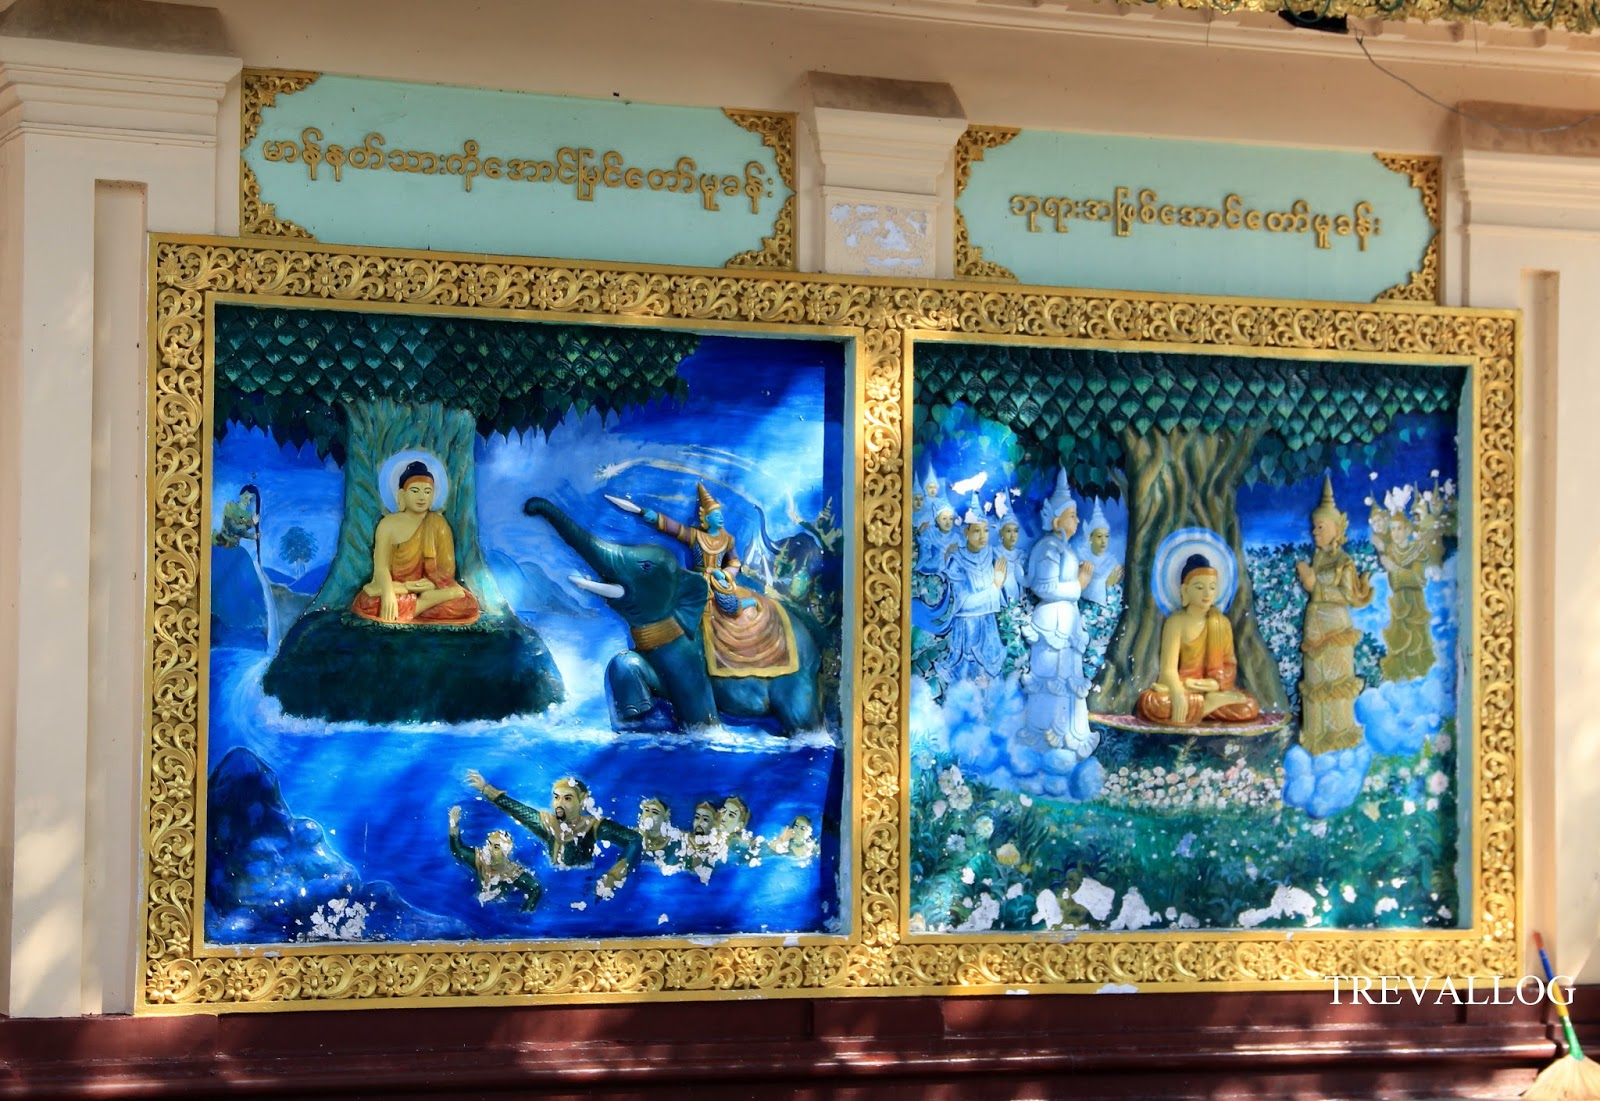 Buddha's life events paintings in Shwedagon Pagoda, Yangon